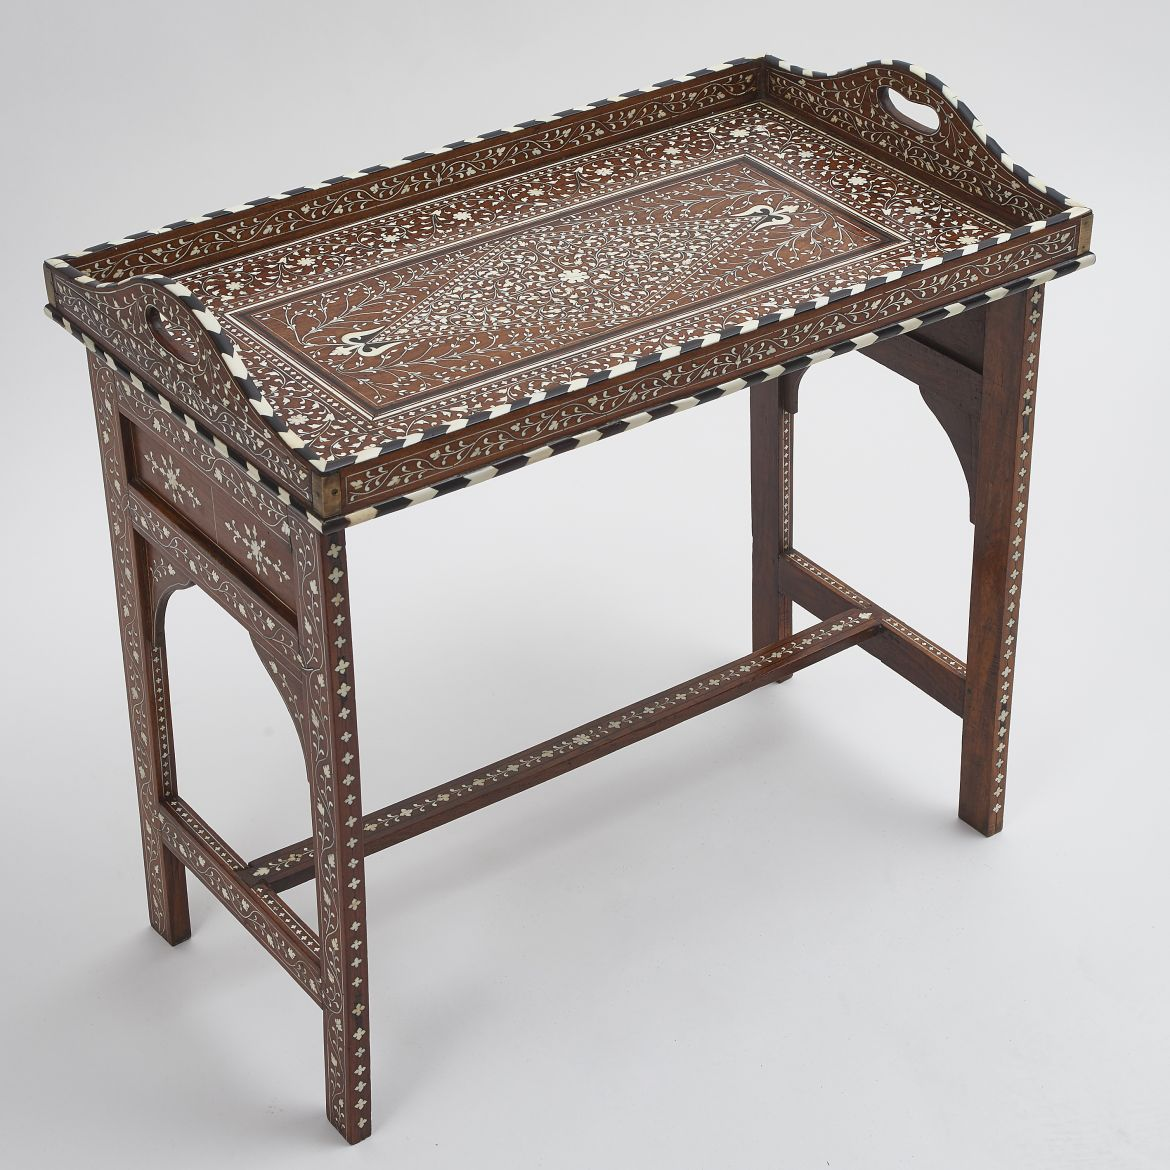 Indian Inlaid Tray Table